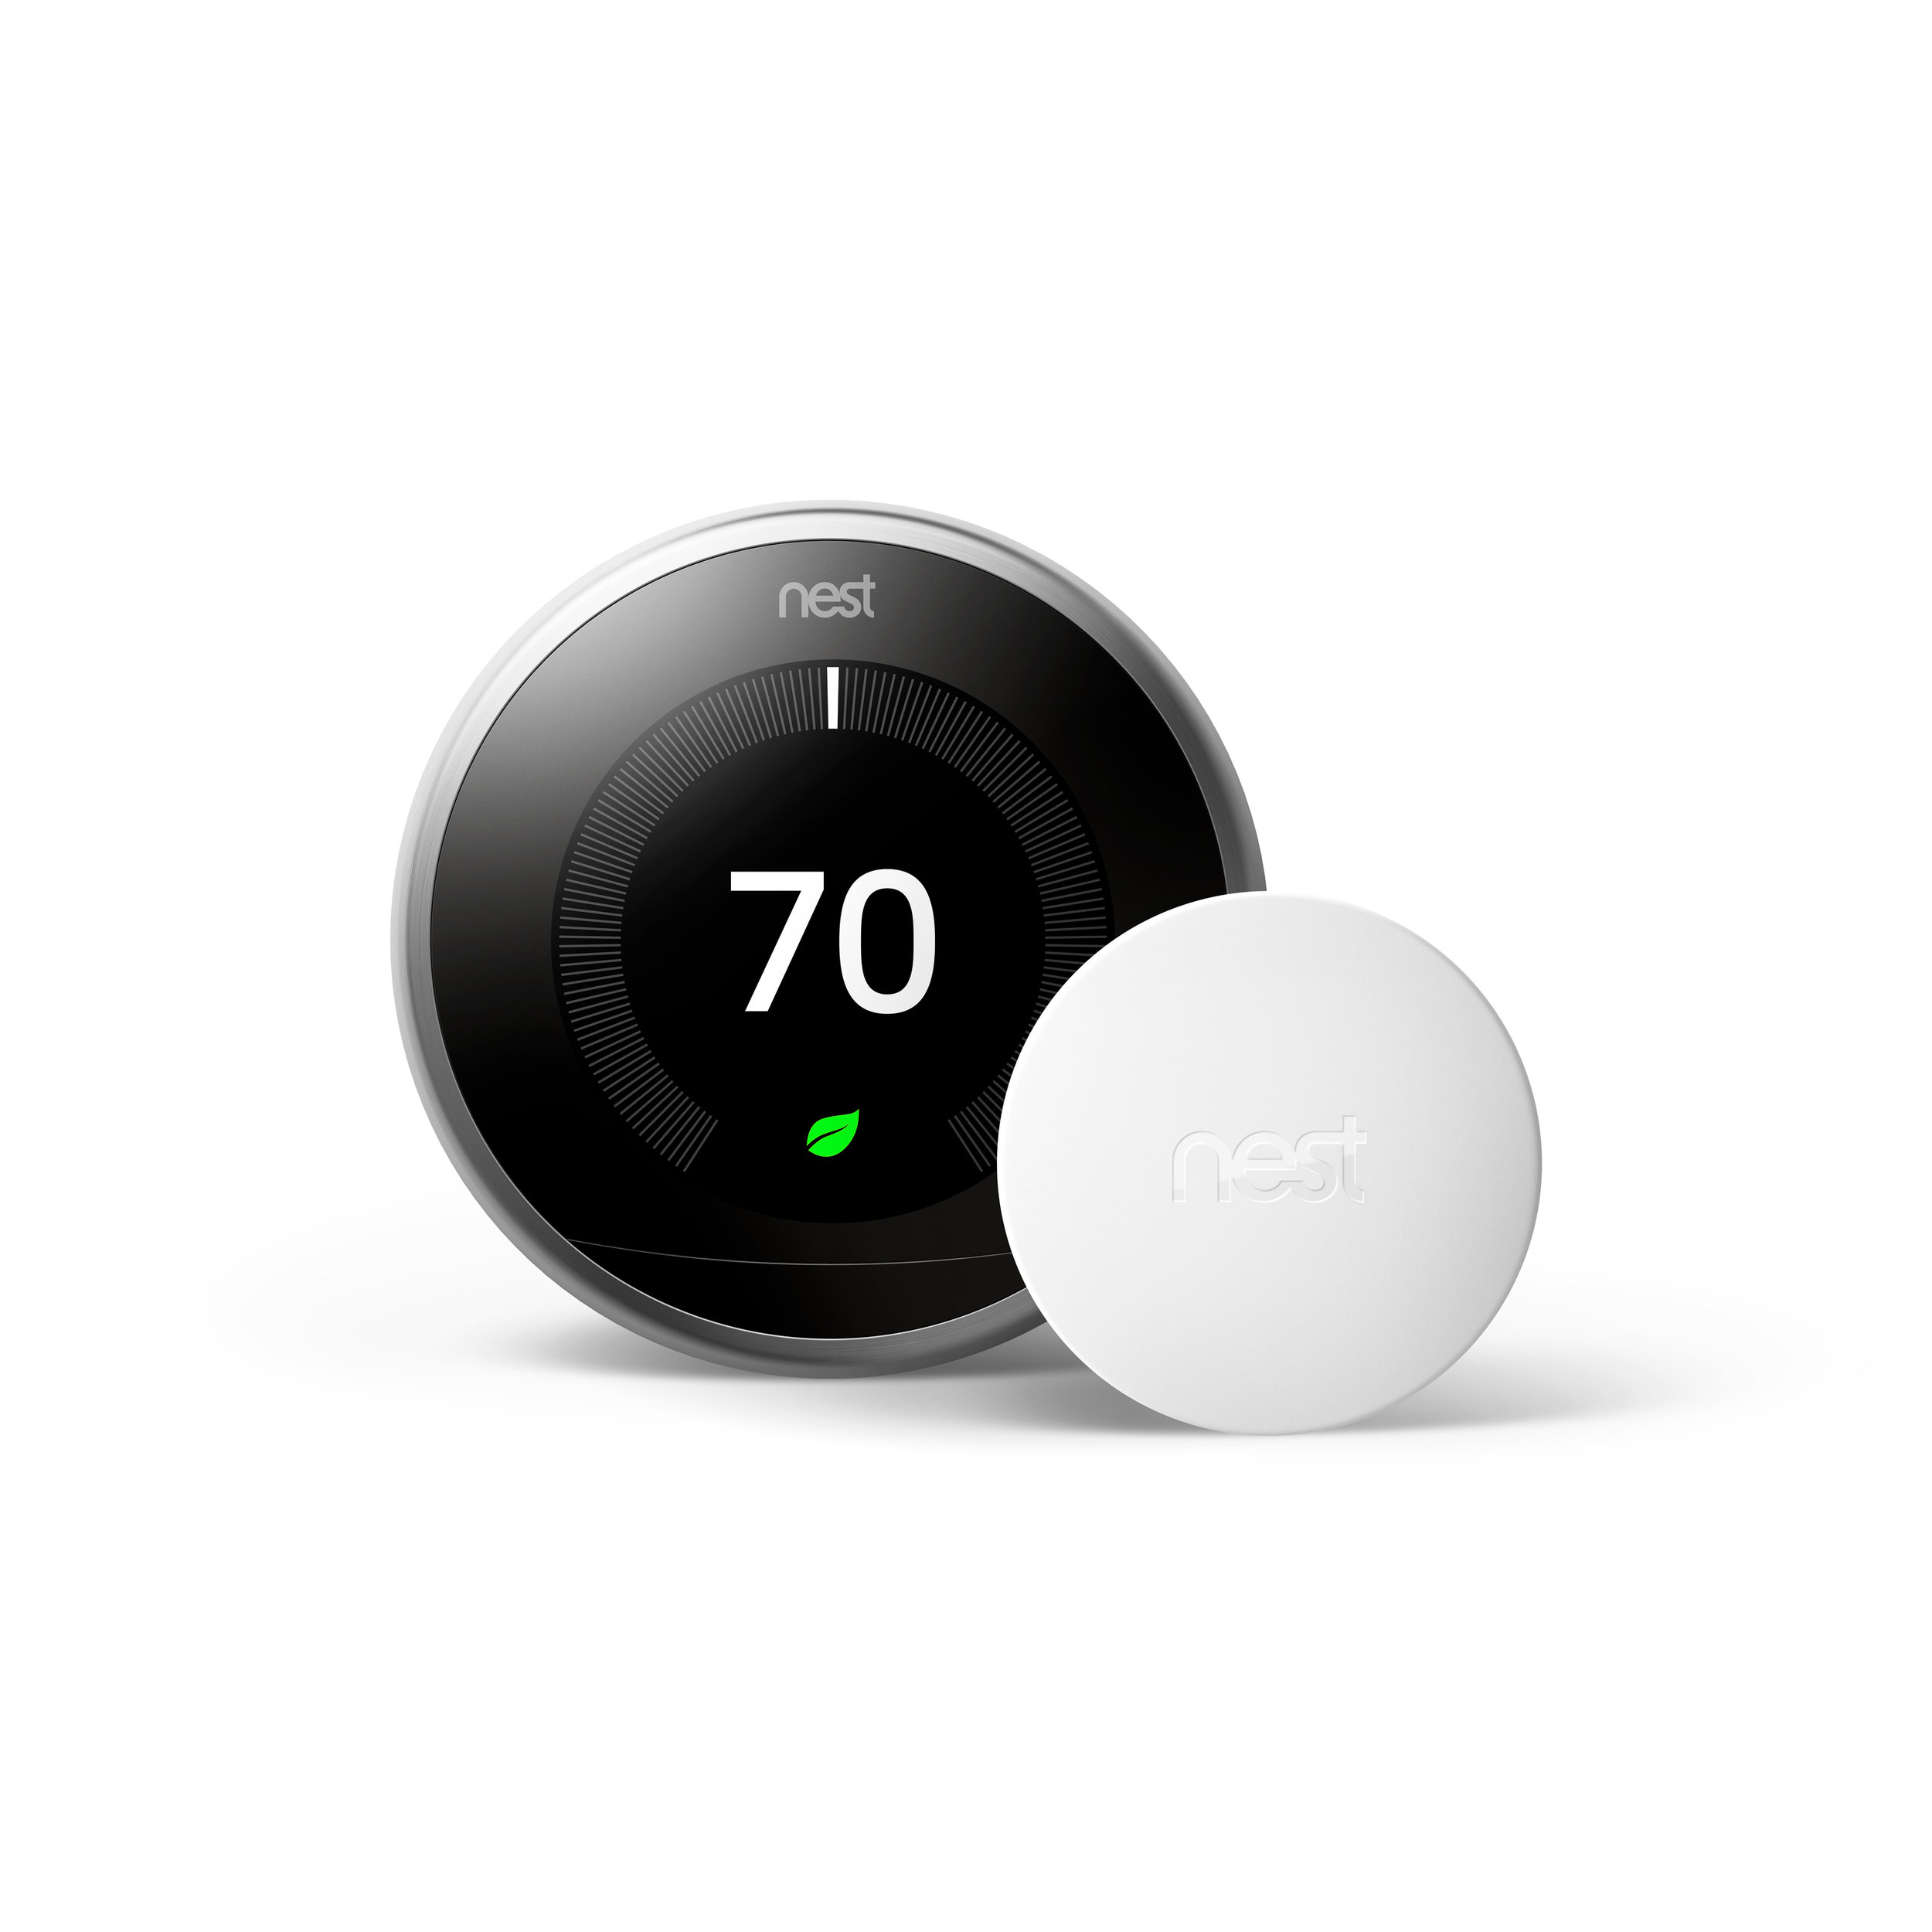 Nest Generation 3 Thermostat - With smart thermostat temperature sensor